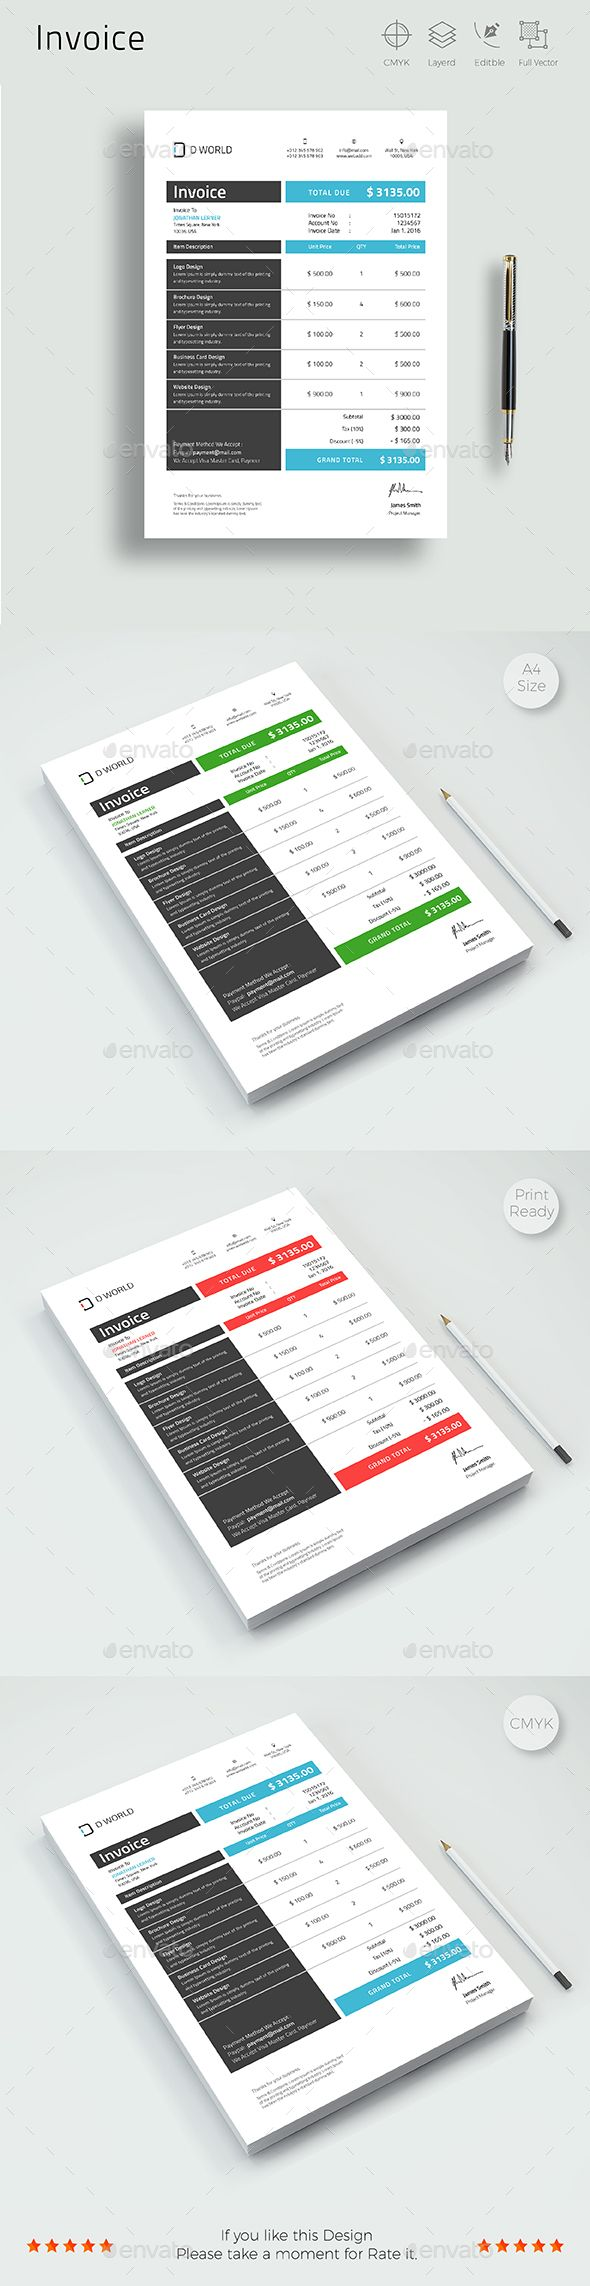 Invoice Template PSD, Vector EPS, AI Illustrator. Download here: http://graphicriver.net/item/invoice/16703586?ref=ksioks